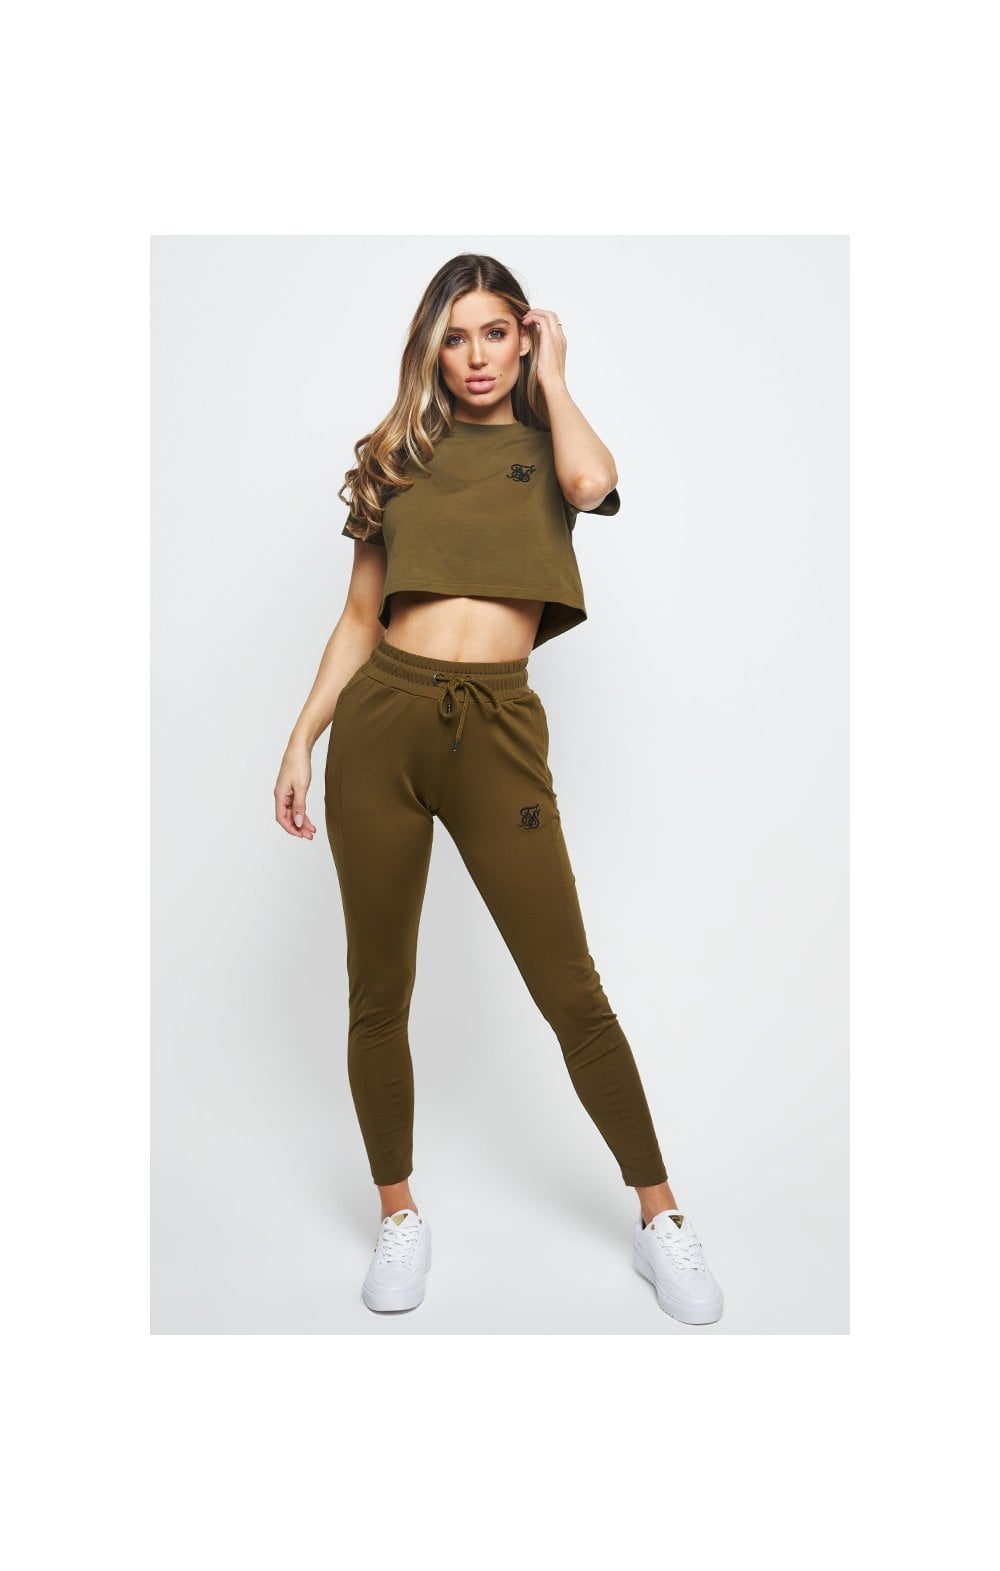 SikSilk Retro Fit Box Tee - Khaki (3)